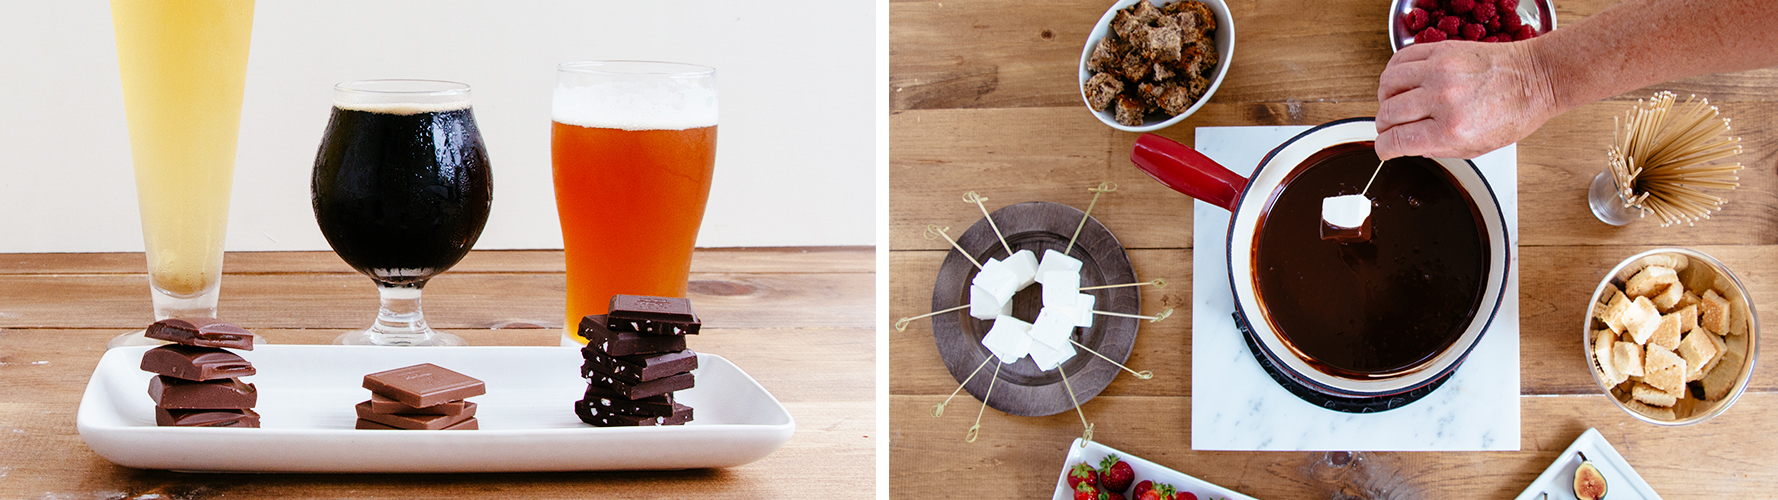 chocolate recipes and beer and chocolate pairing ideas.